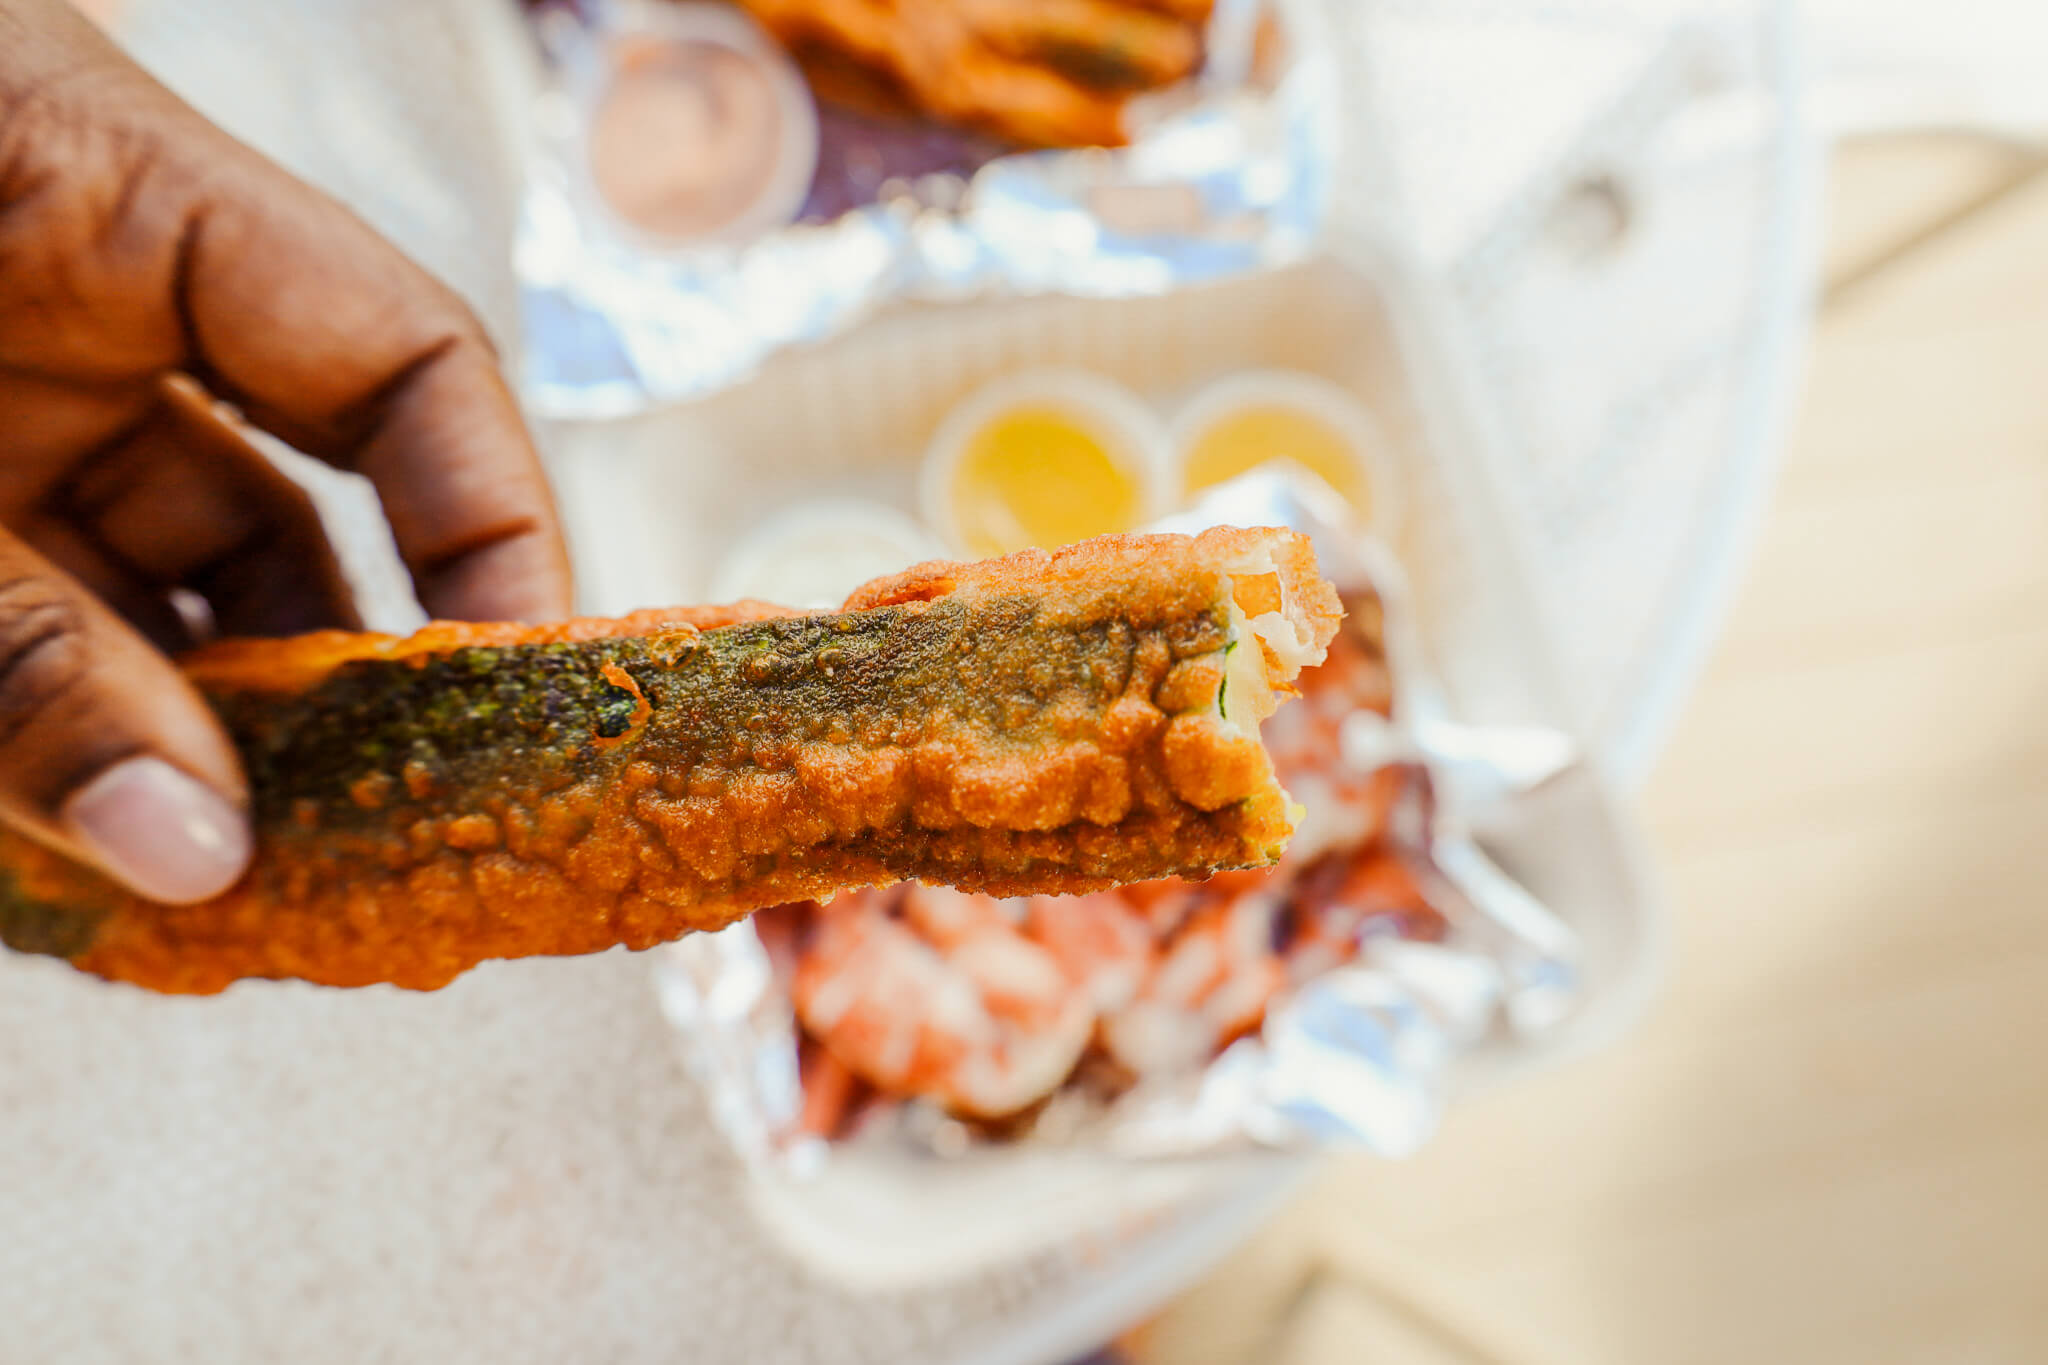 A person holding a fried zucchini.